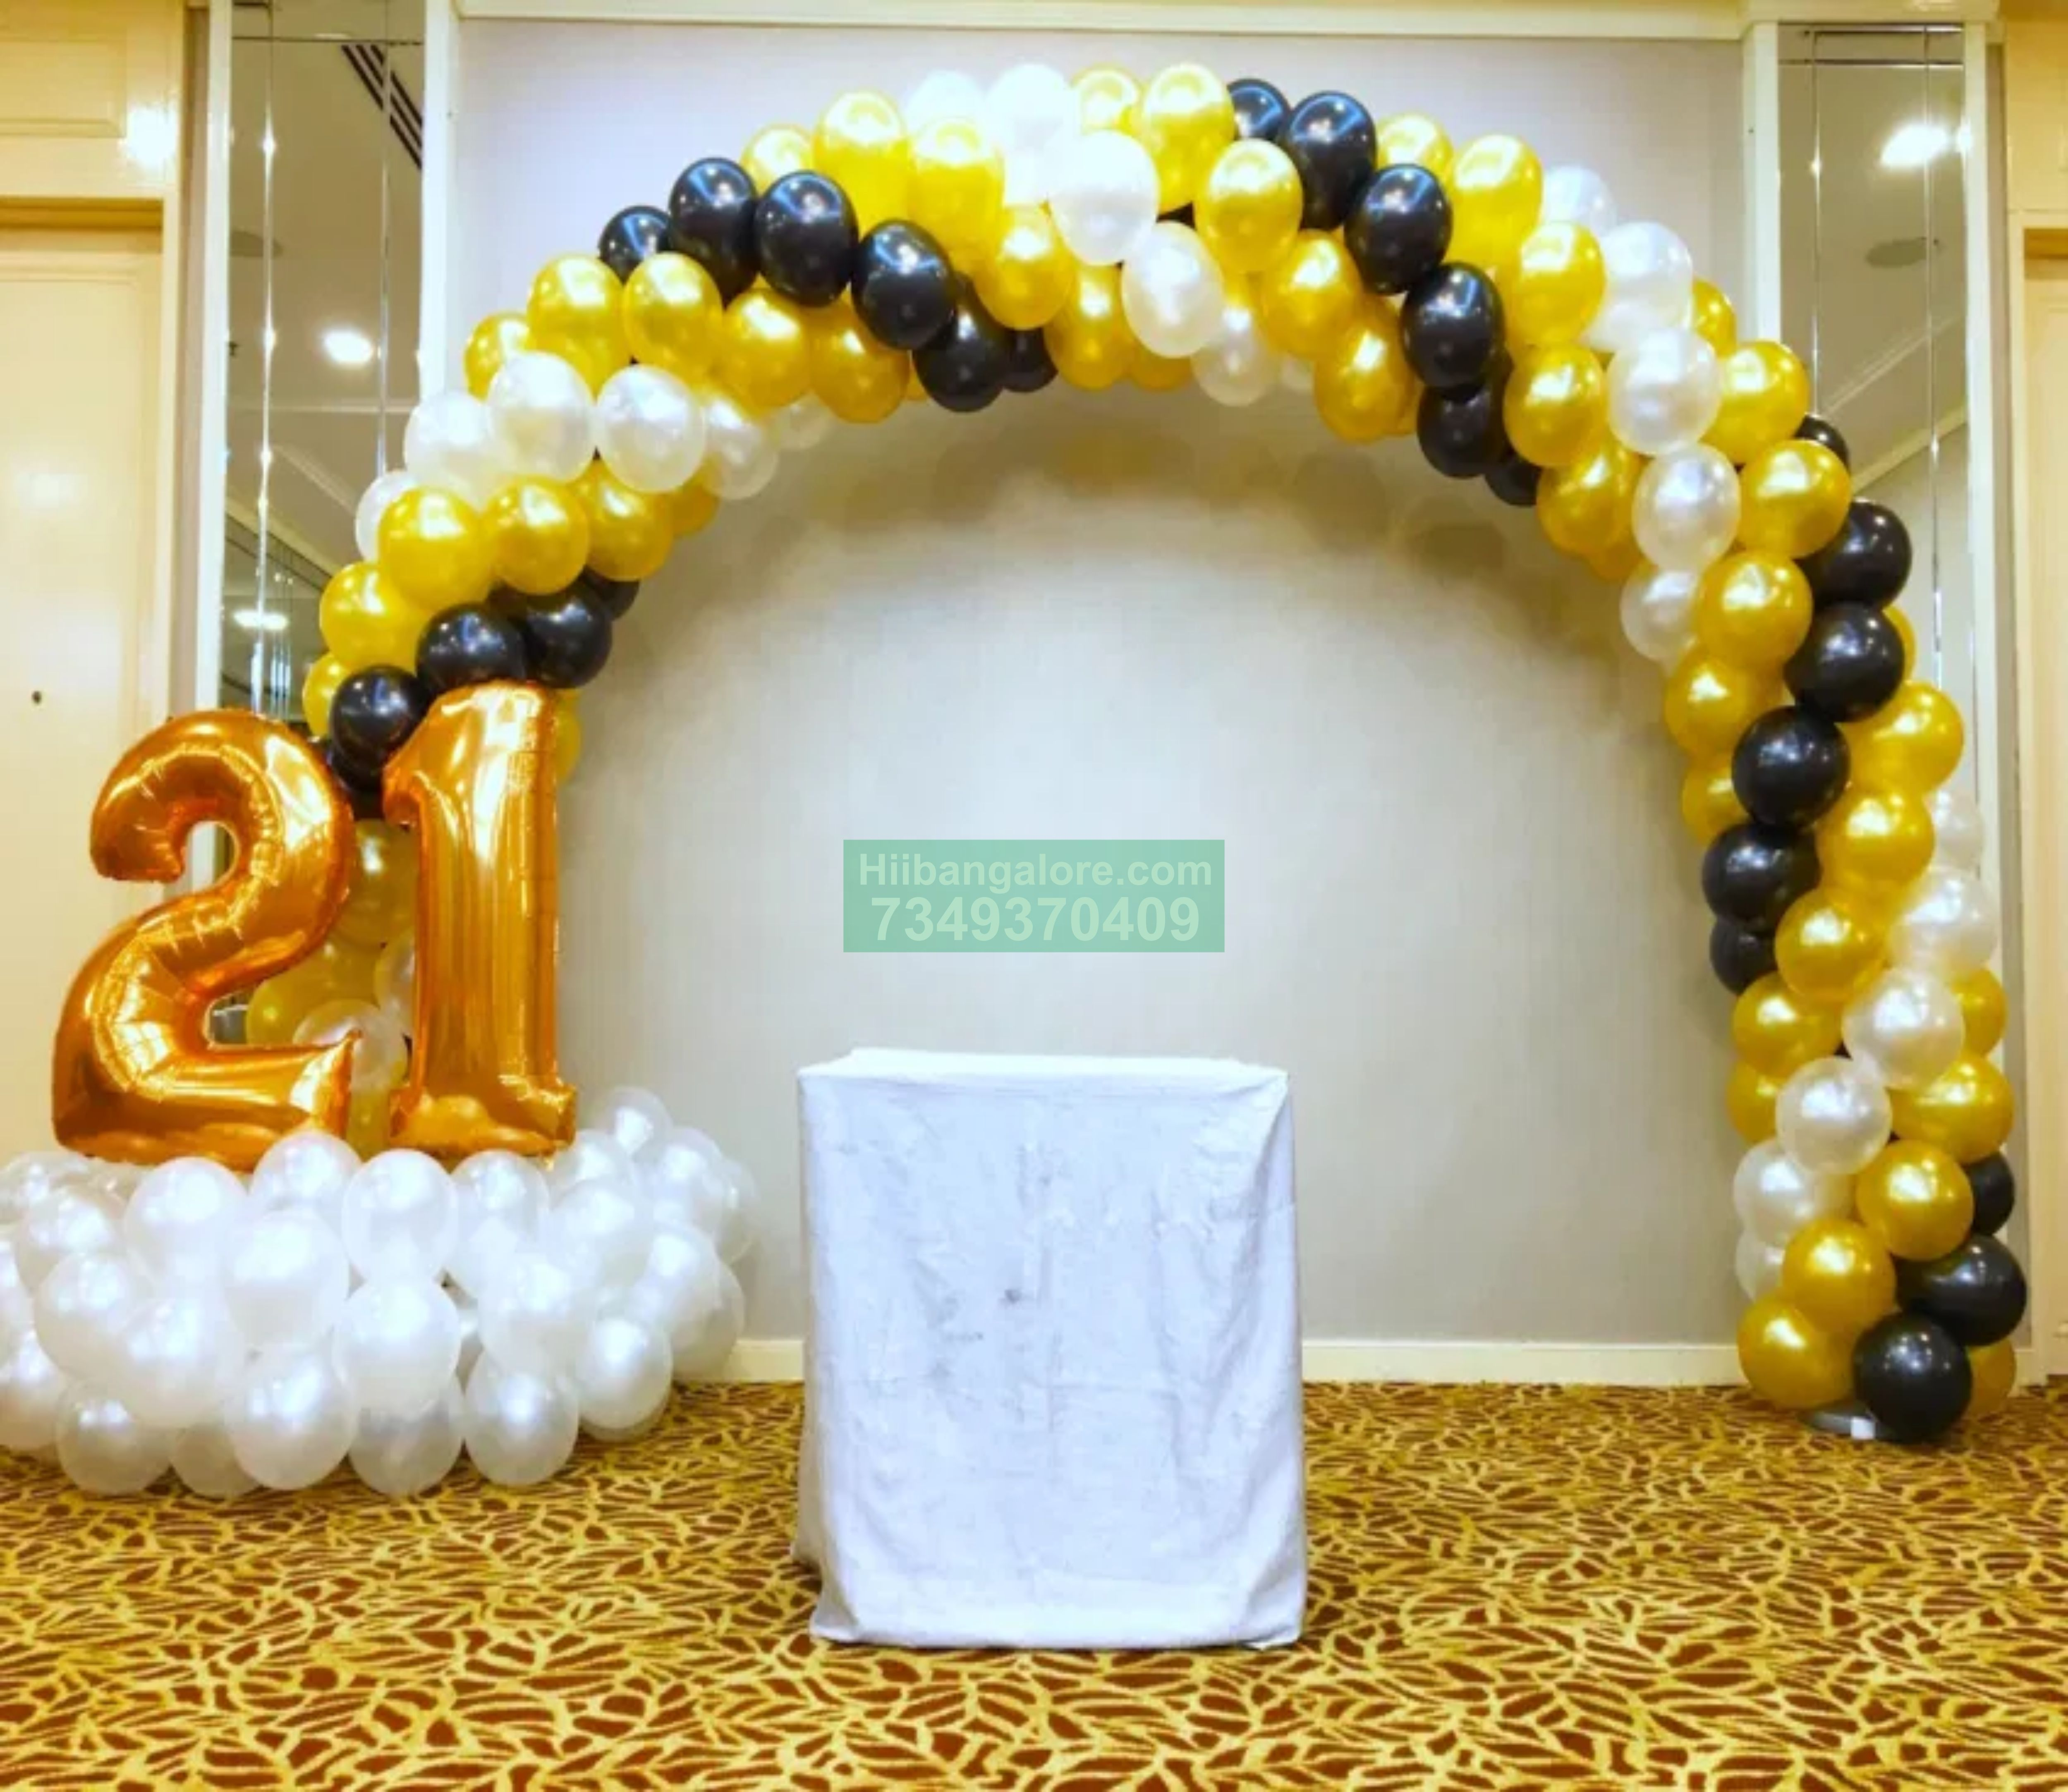 21st Birthday Decoration At Home Best Birthday Party Organisers Balloon Decorators Birthday Party Caterers In Bangalore